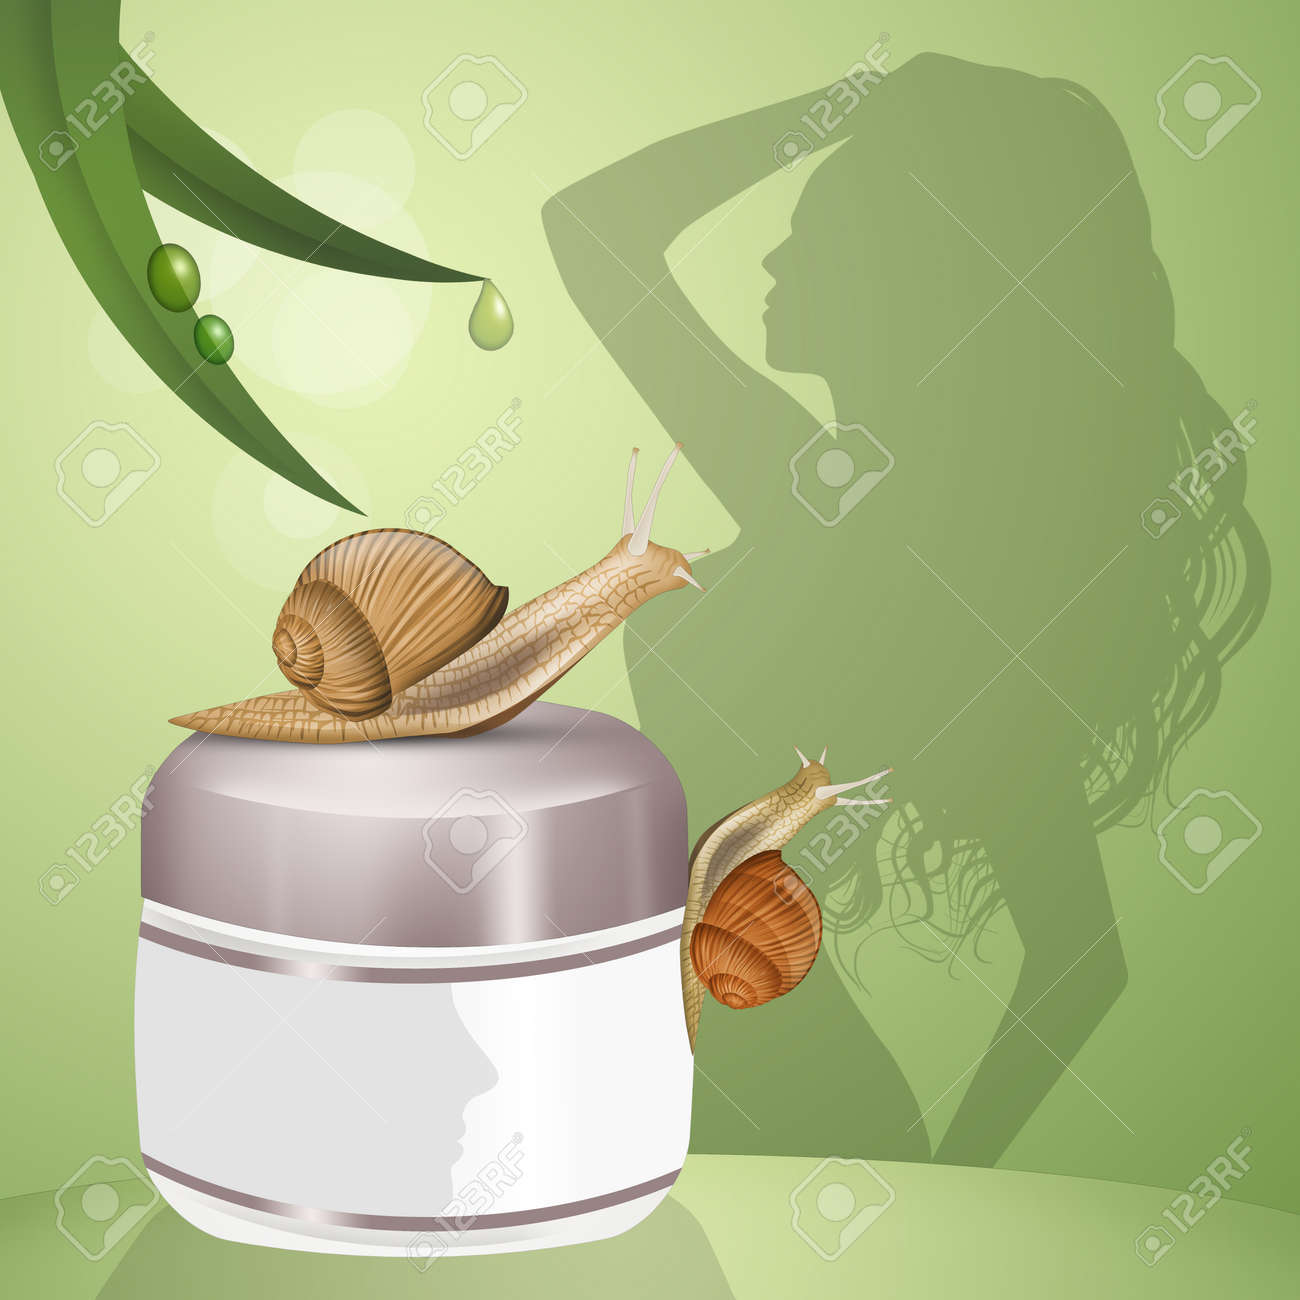 Cream Based On Snail Slime Stock Photo, Picture And Royalty Free ...